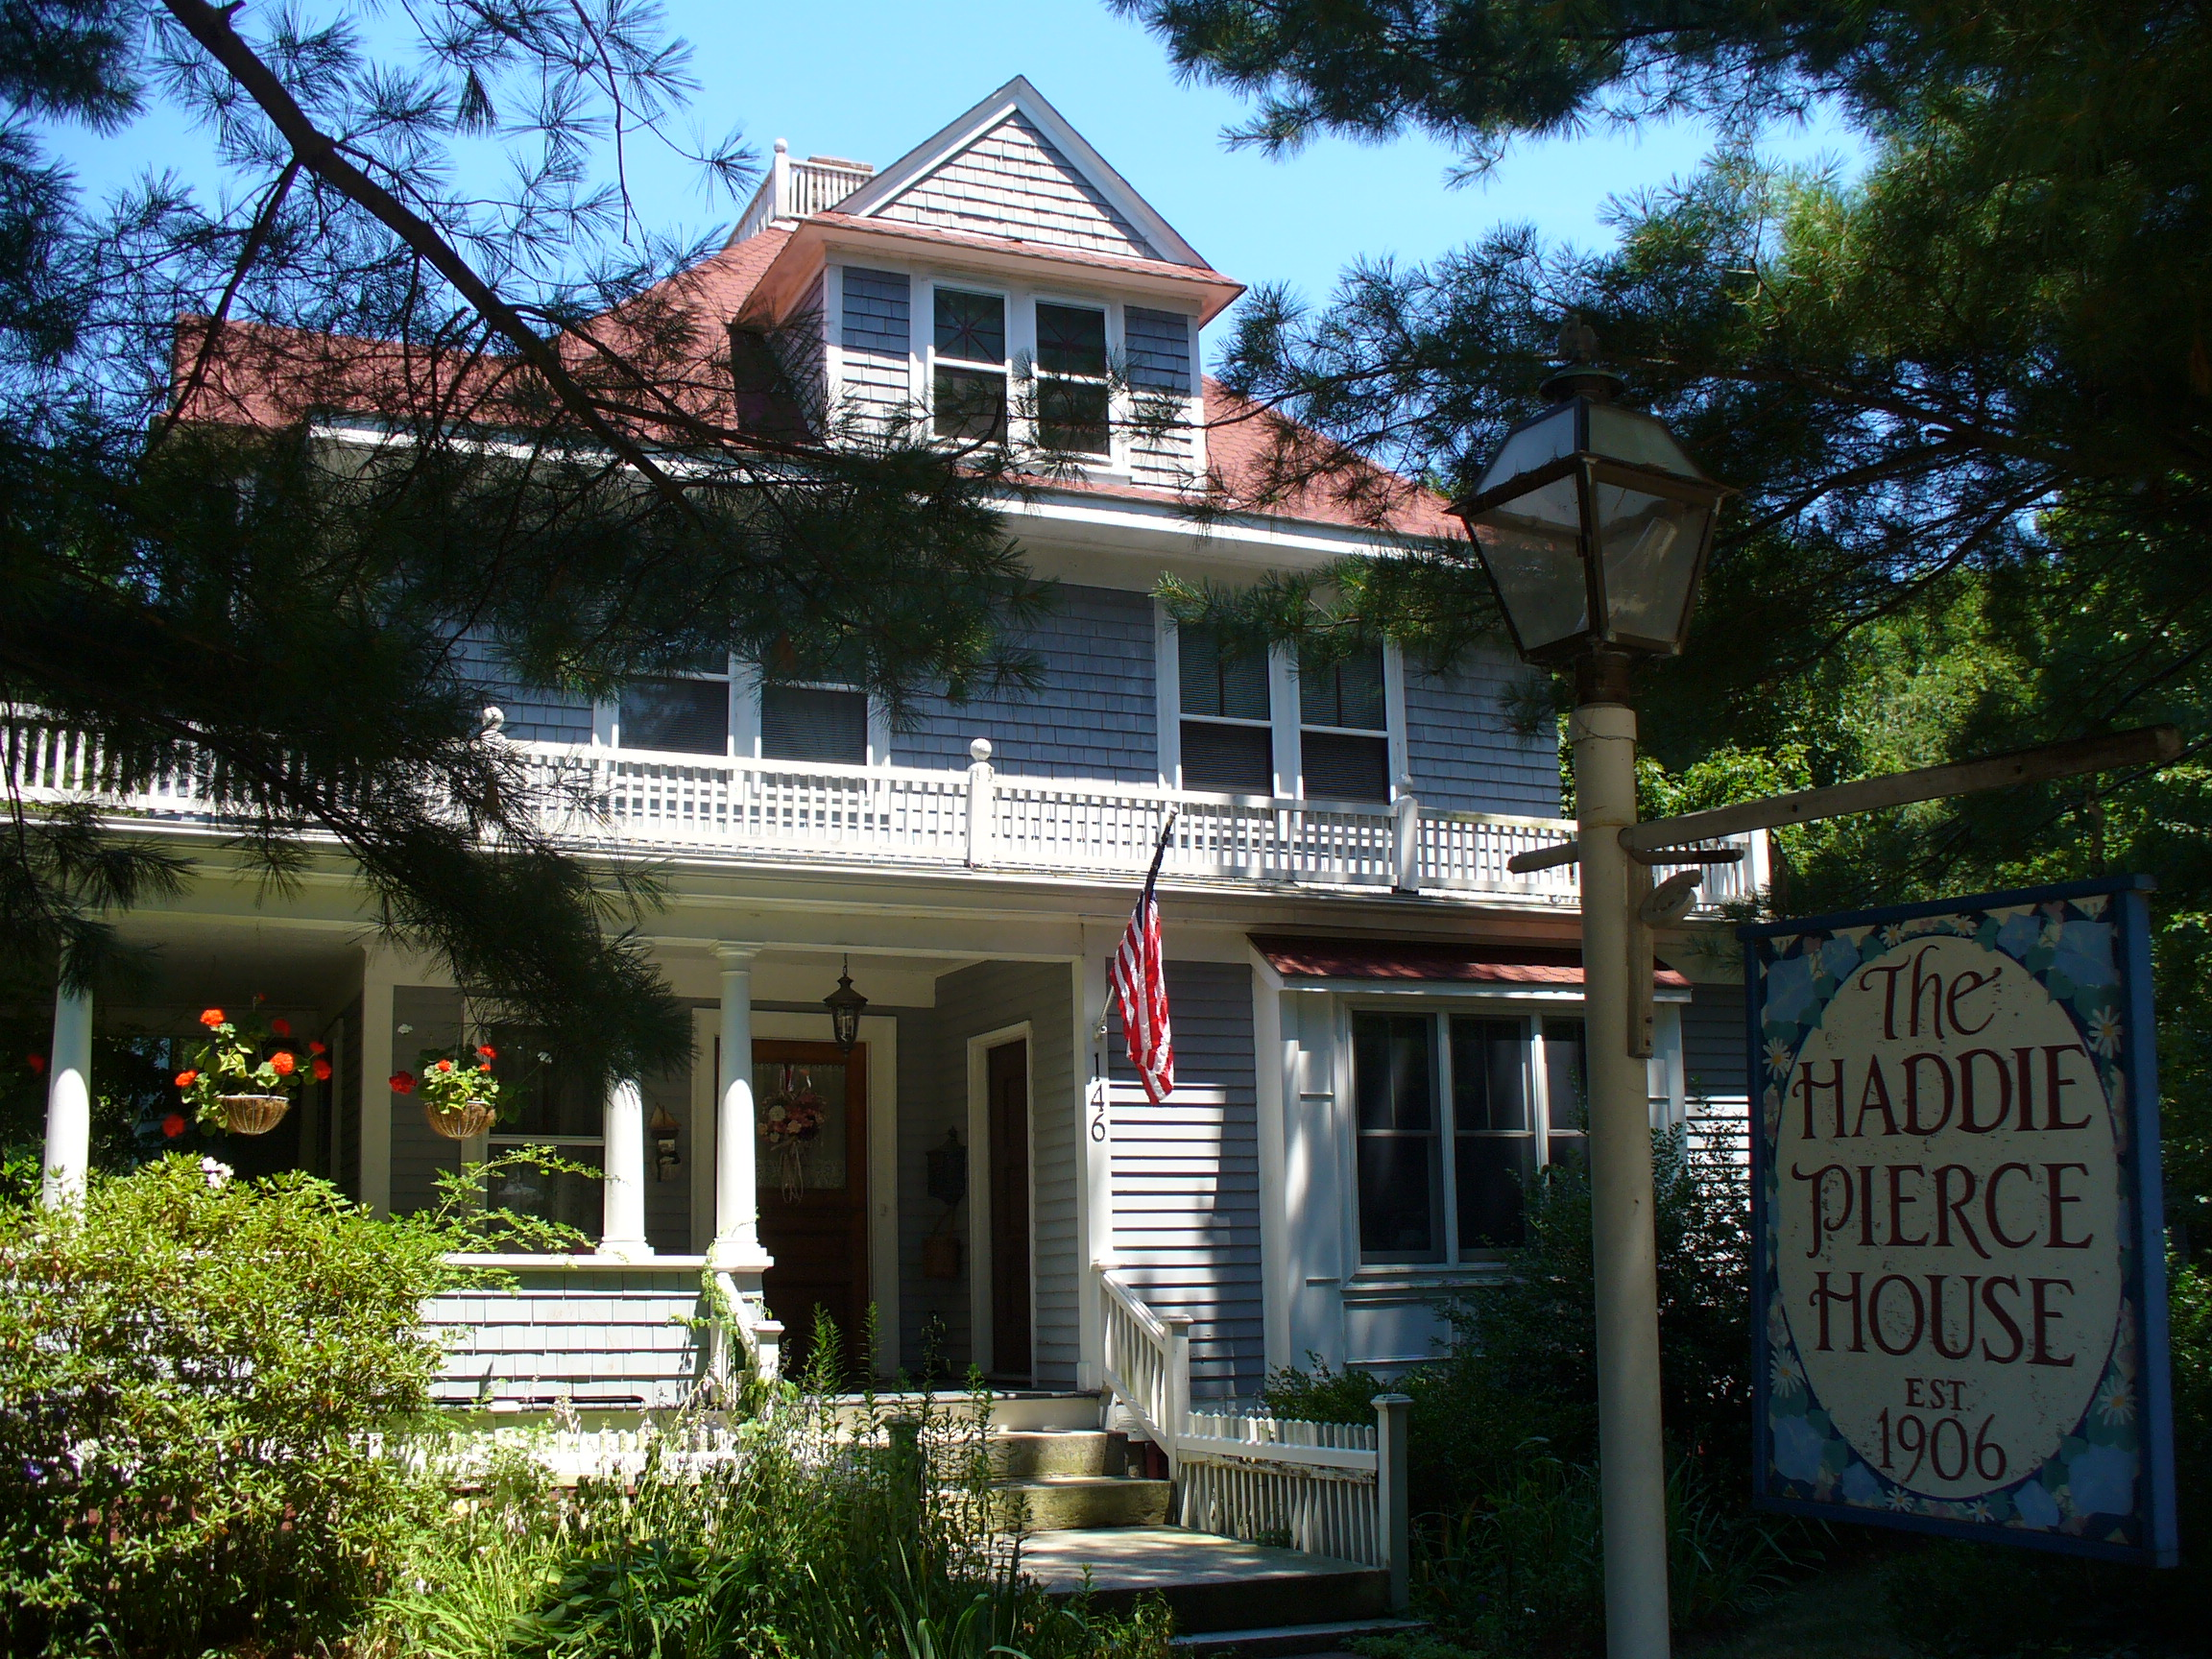 Haddie Pierce House